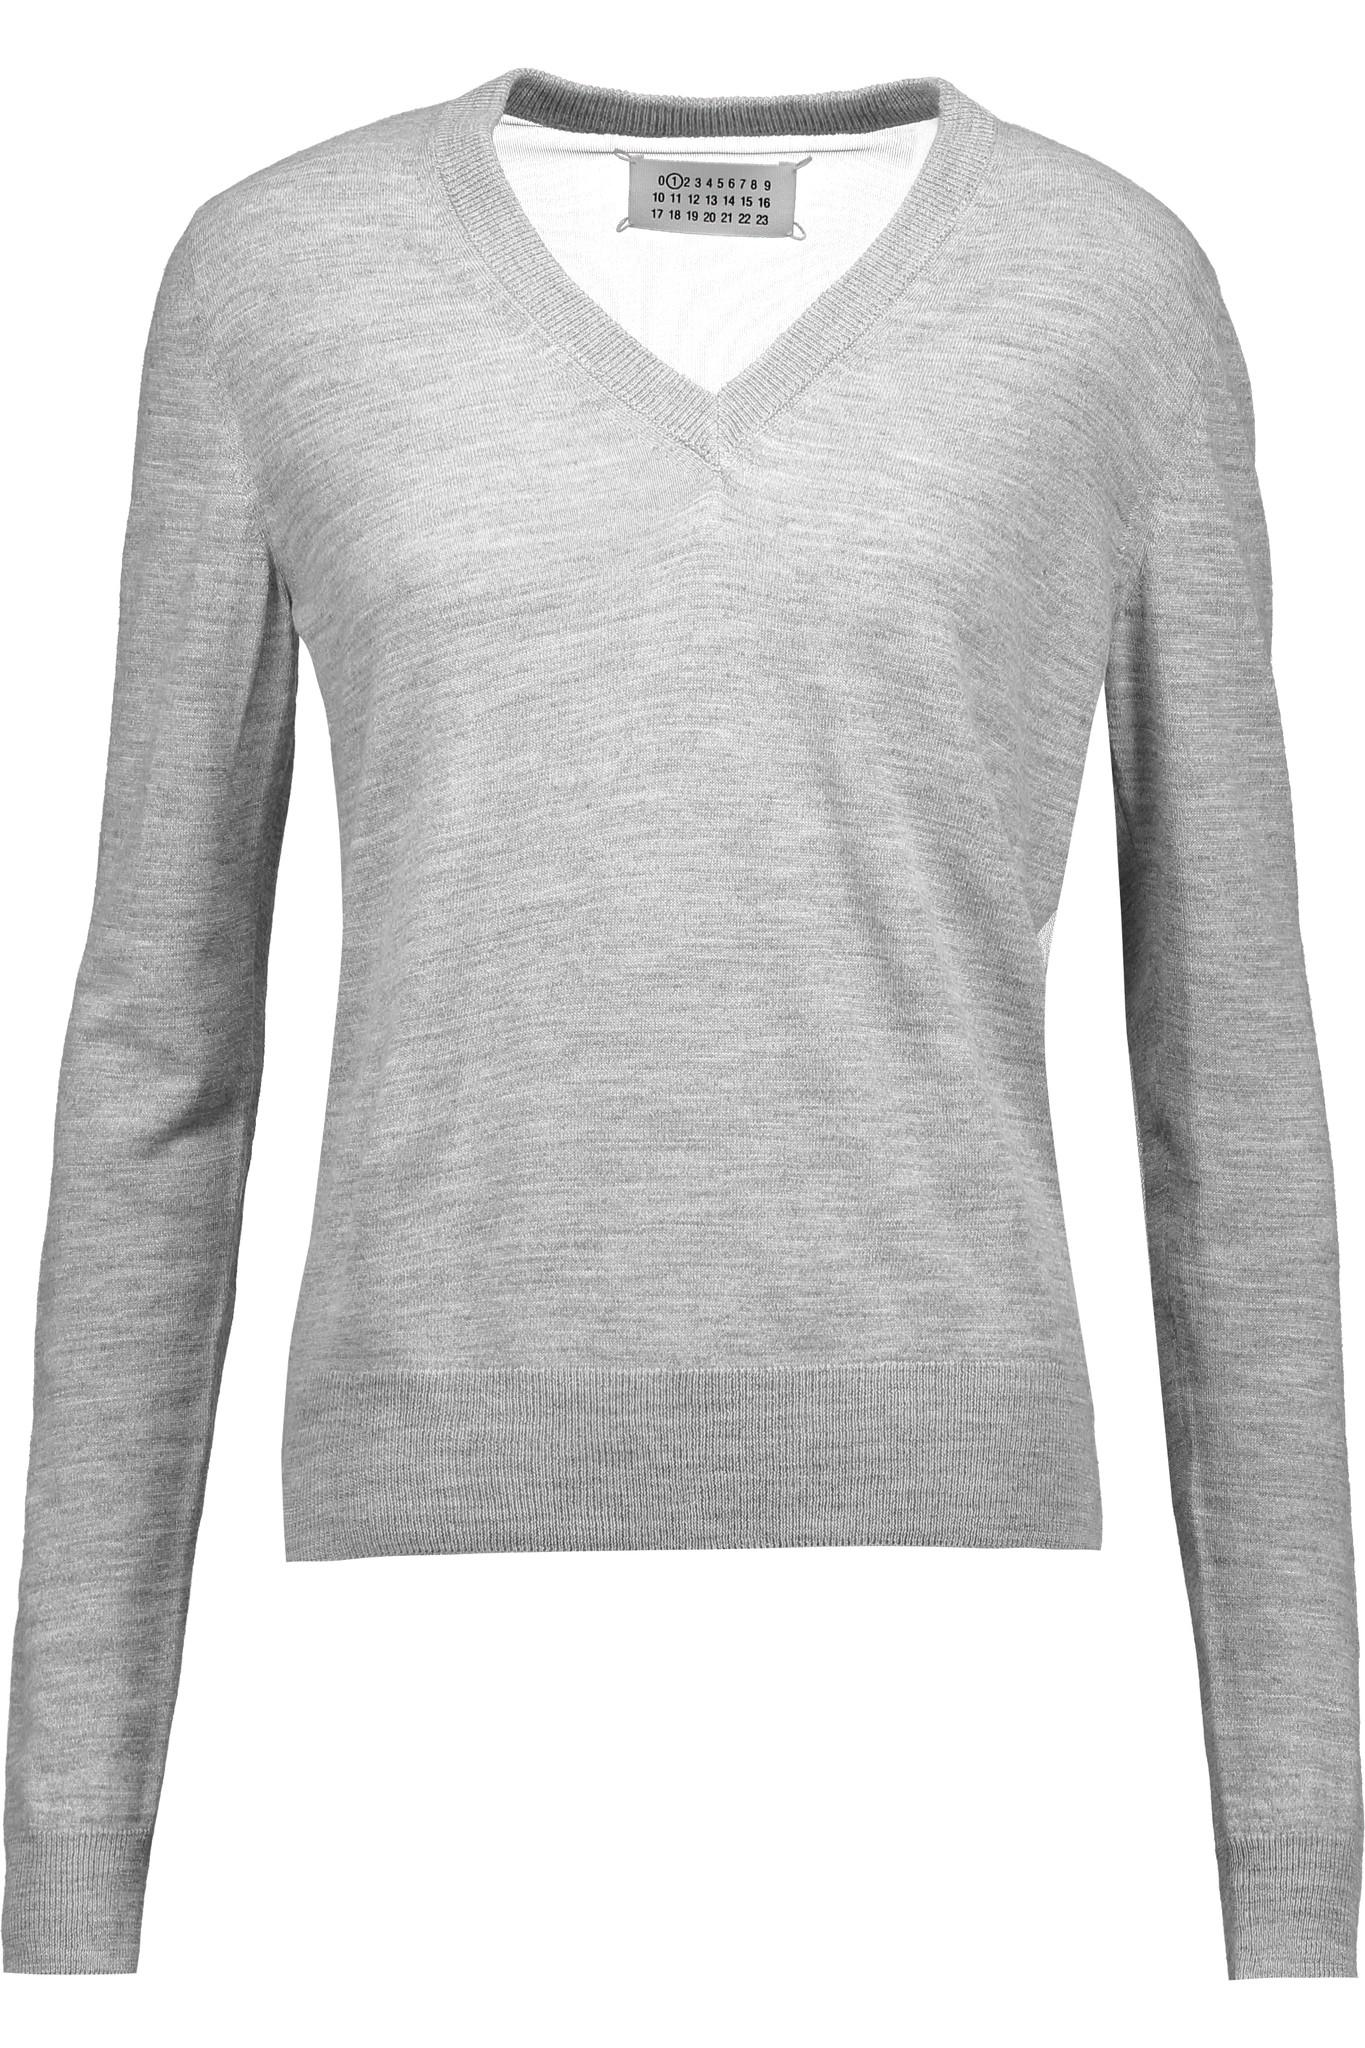 2cde5e3e6c4 Lyst - Maison Margiela Tulle-paneled Knitted Sweater in Gray